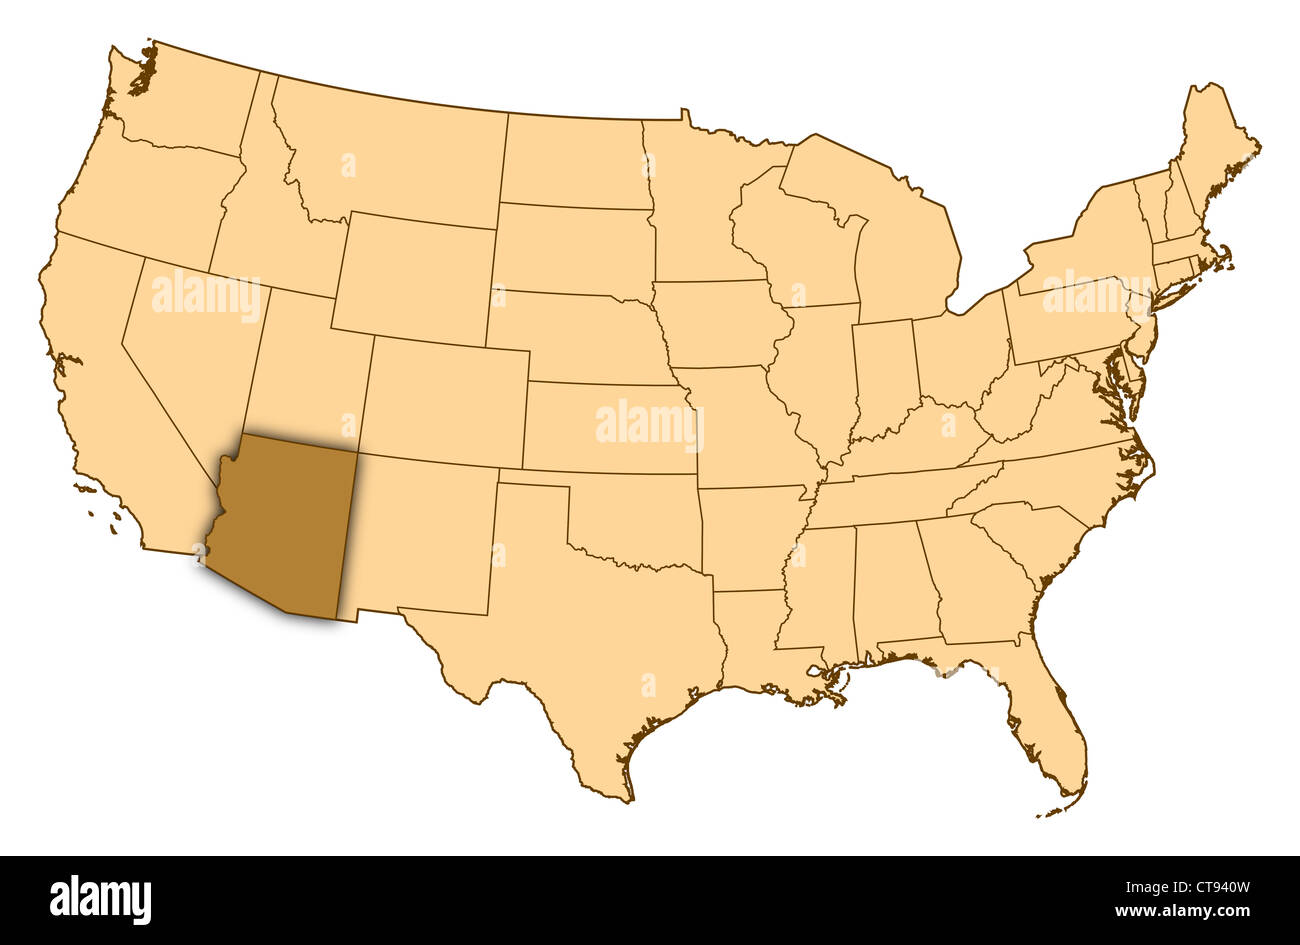 Where Is Arizona On The Us Map.Map Of United States Where Arizona Is Highlighted Stock Photo